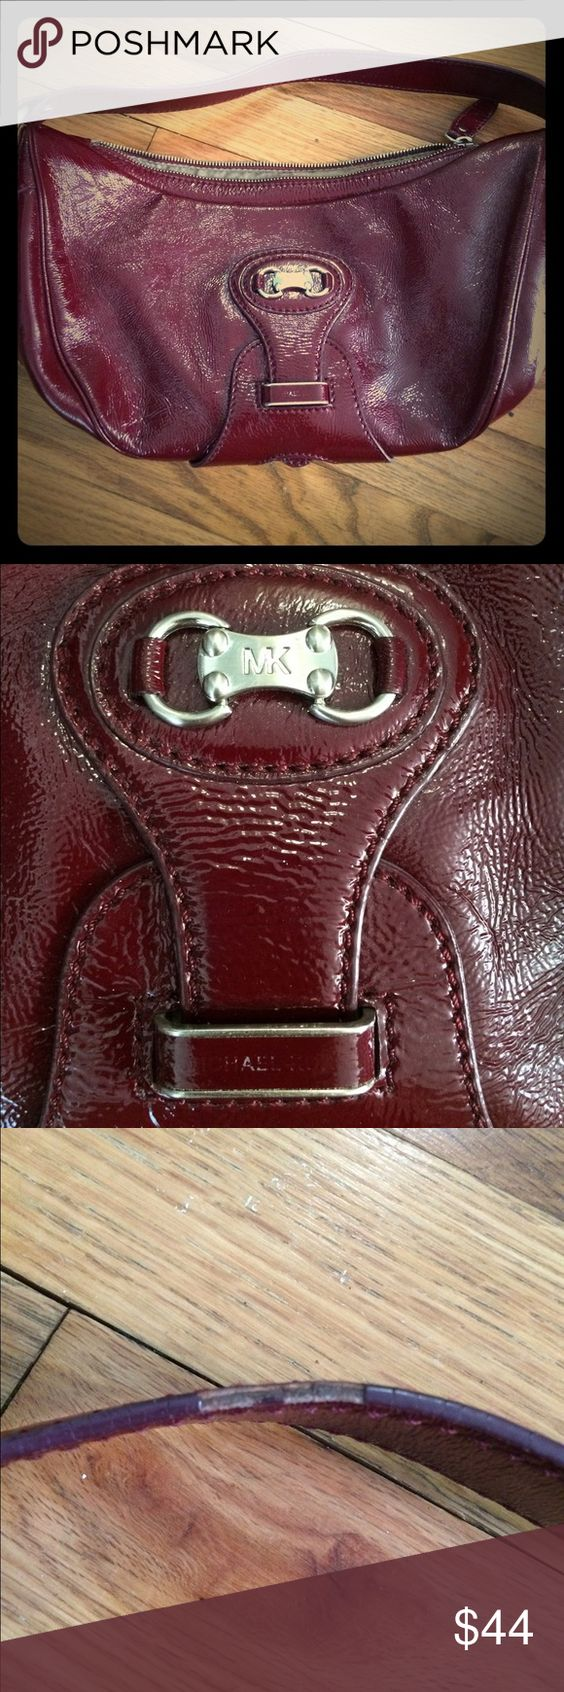 Michael Kors purse Beautiful burgundy Michael Kors purse. Good condition. The Michael Kors is worn off in the one spot, as you can see in the one picture. There is a small worn spot on the strap. Hardly noticeable, especially when worn. Michael Kors Bags Hobos